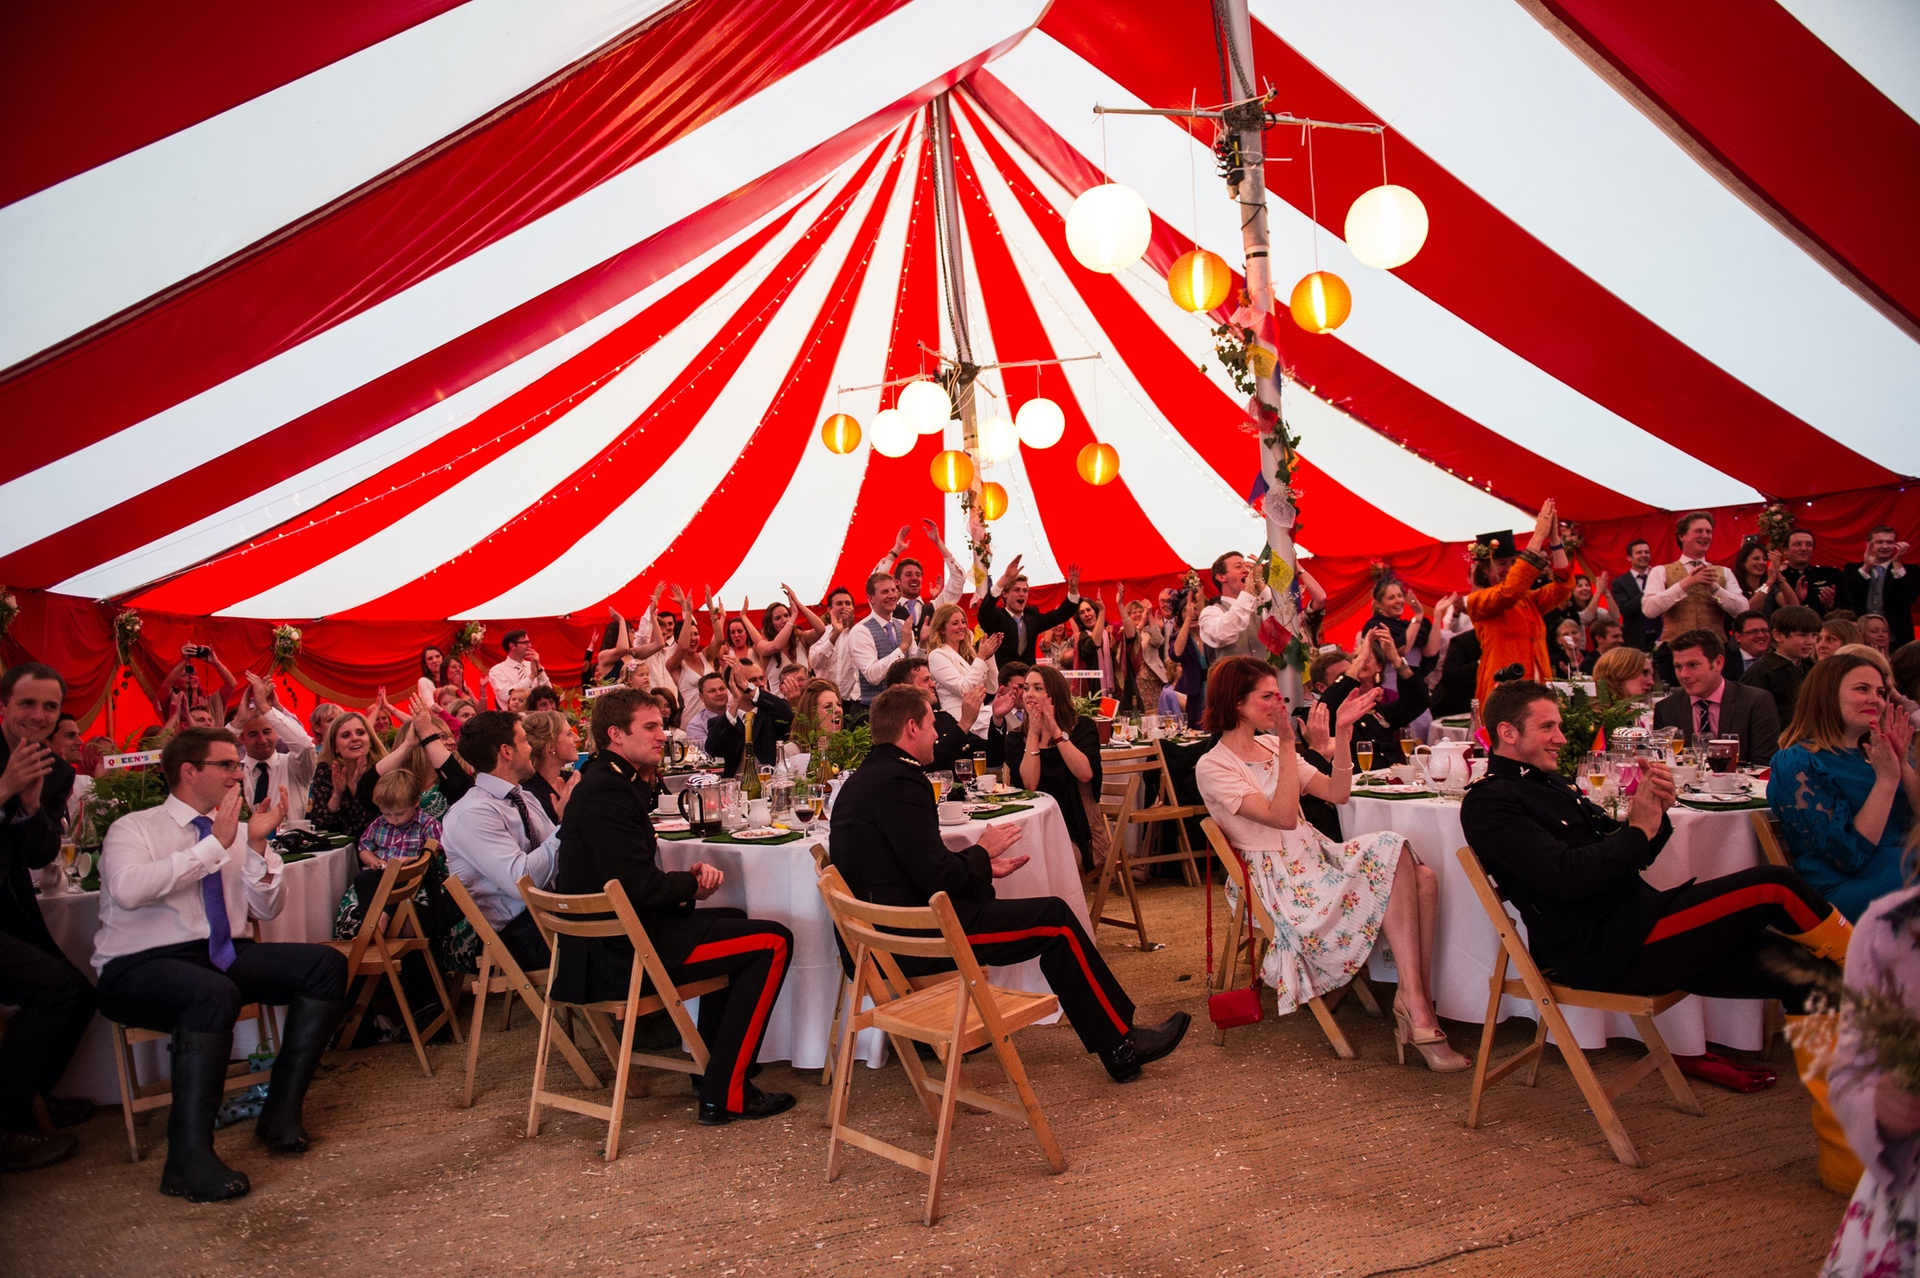 red and white circus styule marquee at festival wedding in somerset near Glastonbury and Shepton Mallet uk.